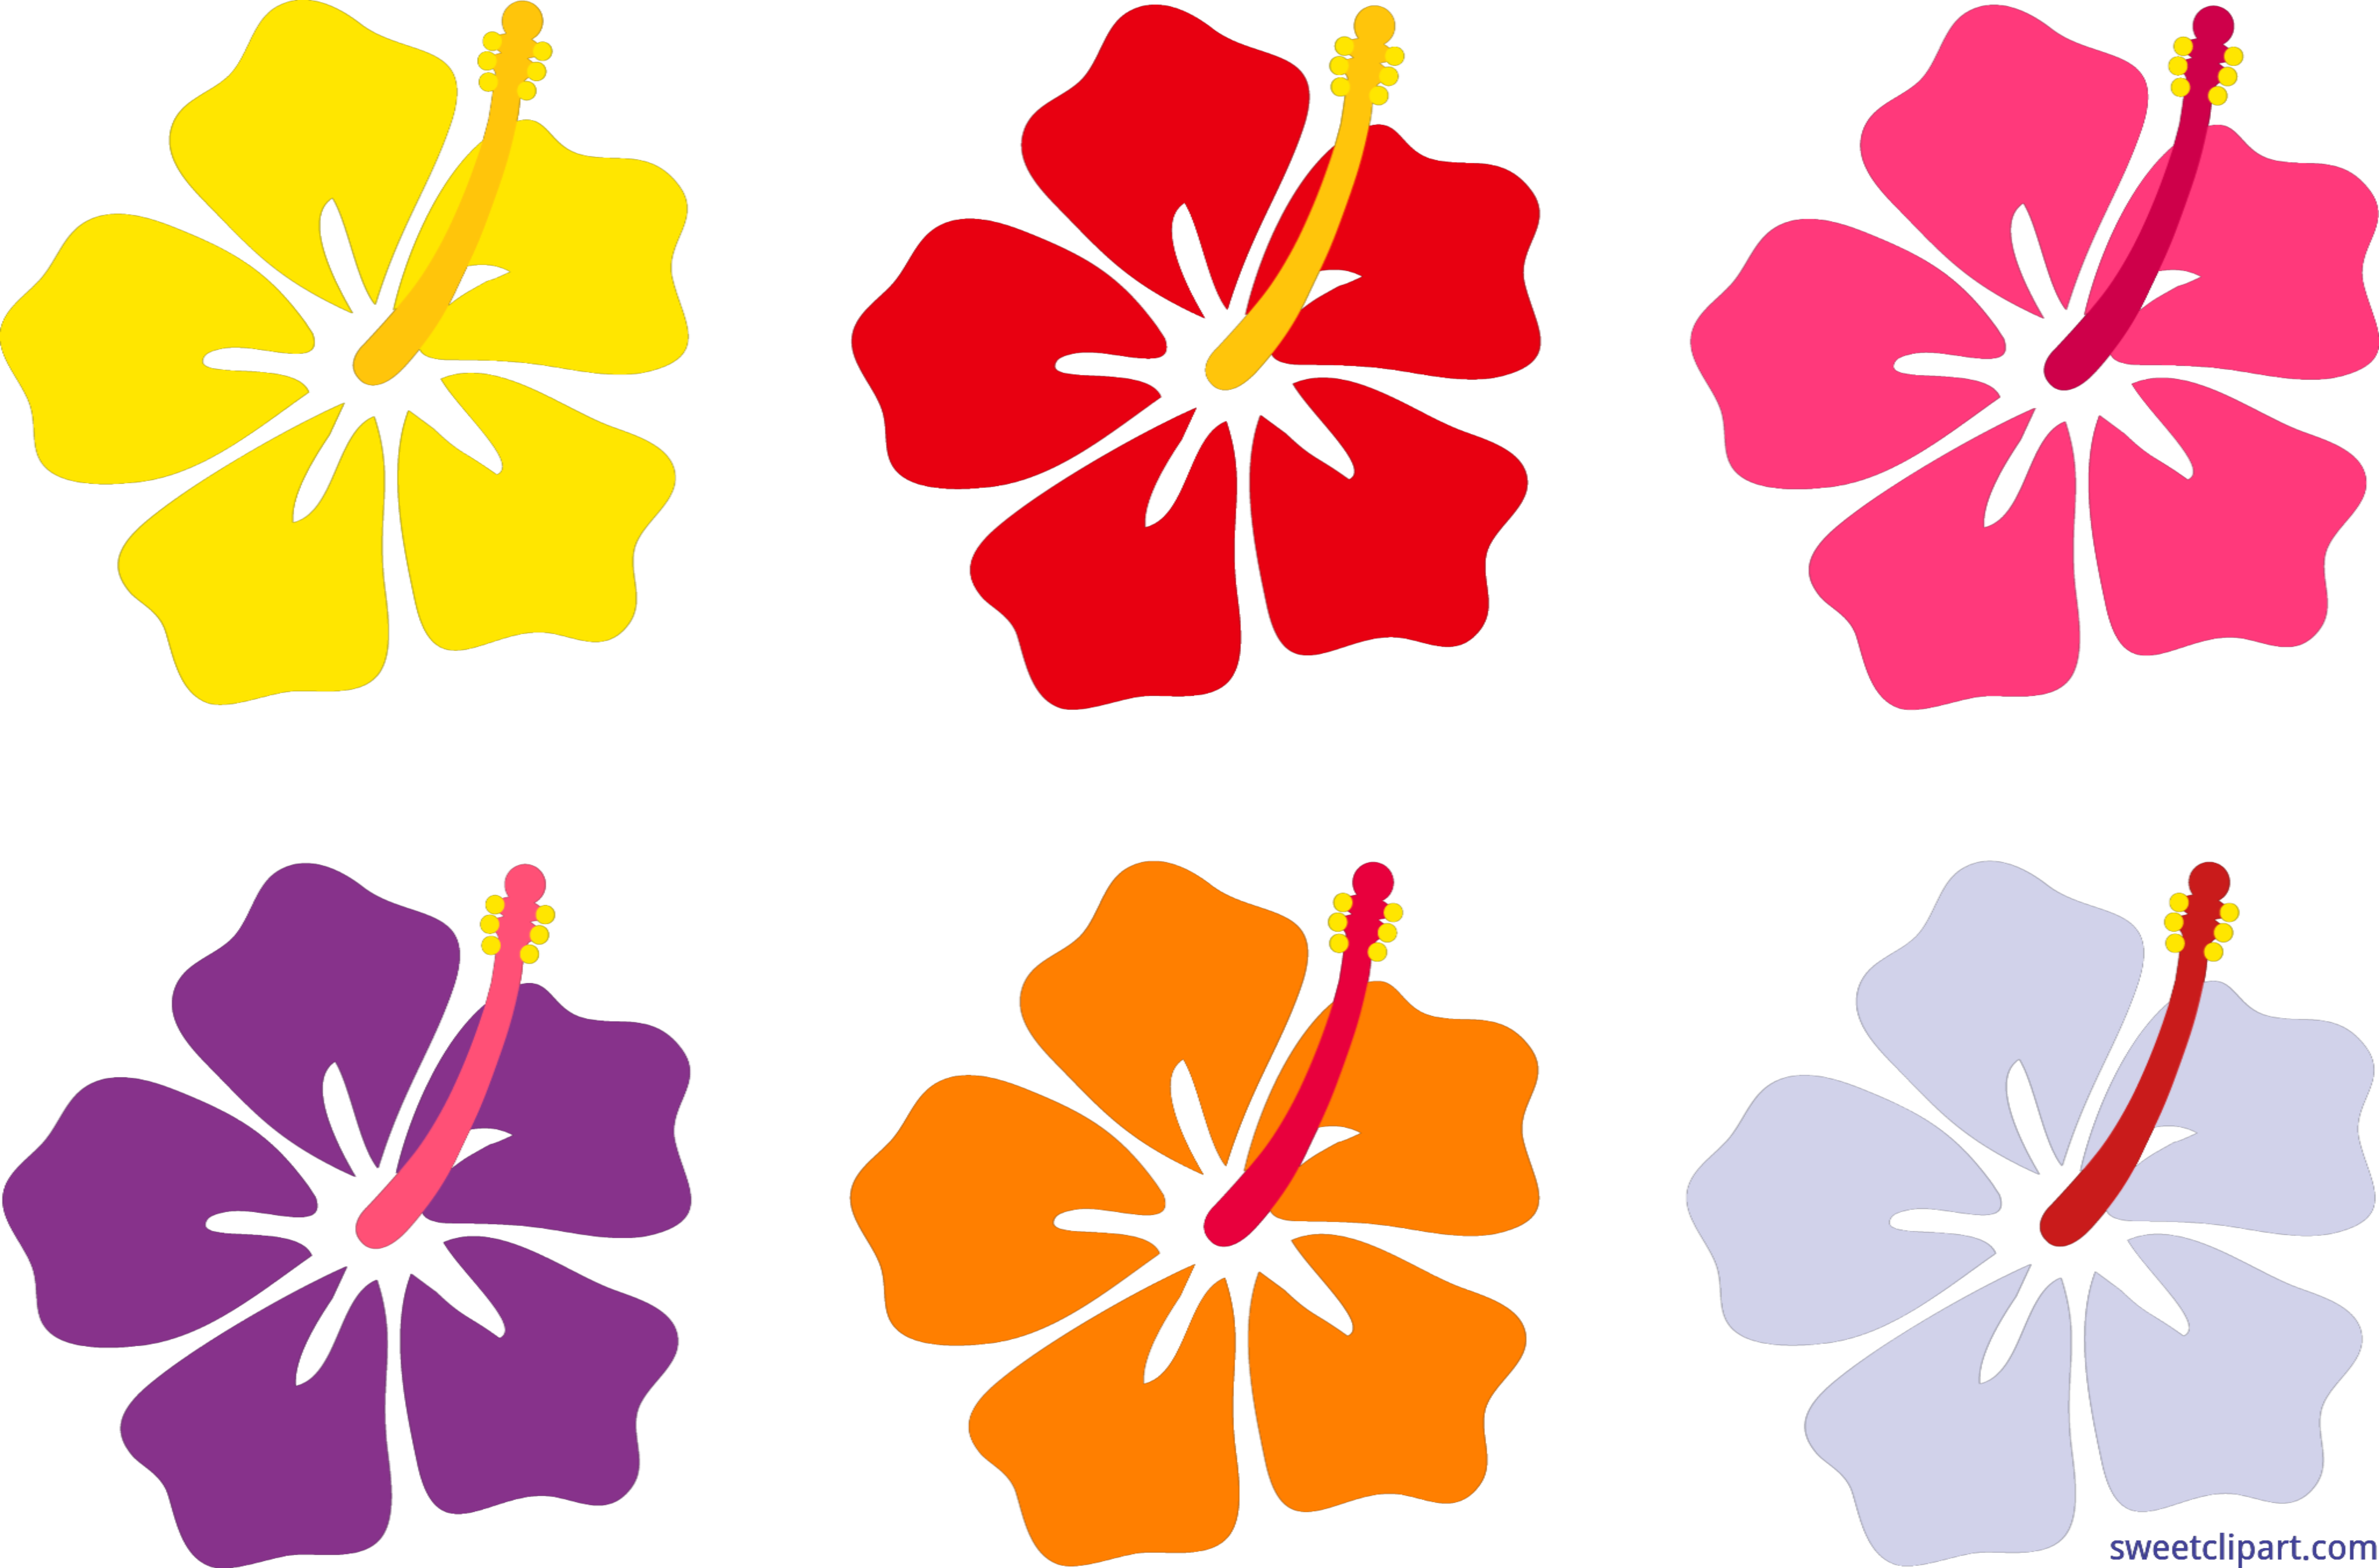 Flower seed clipart graphic freeuse library Hawaiian hibiscus Flower Hawaiian hibiscus Clip art - hibiscus 8230 ... graphic freeuse library